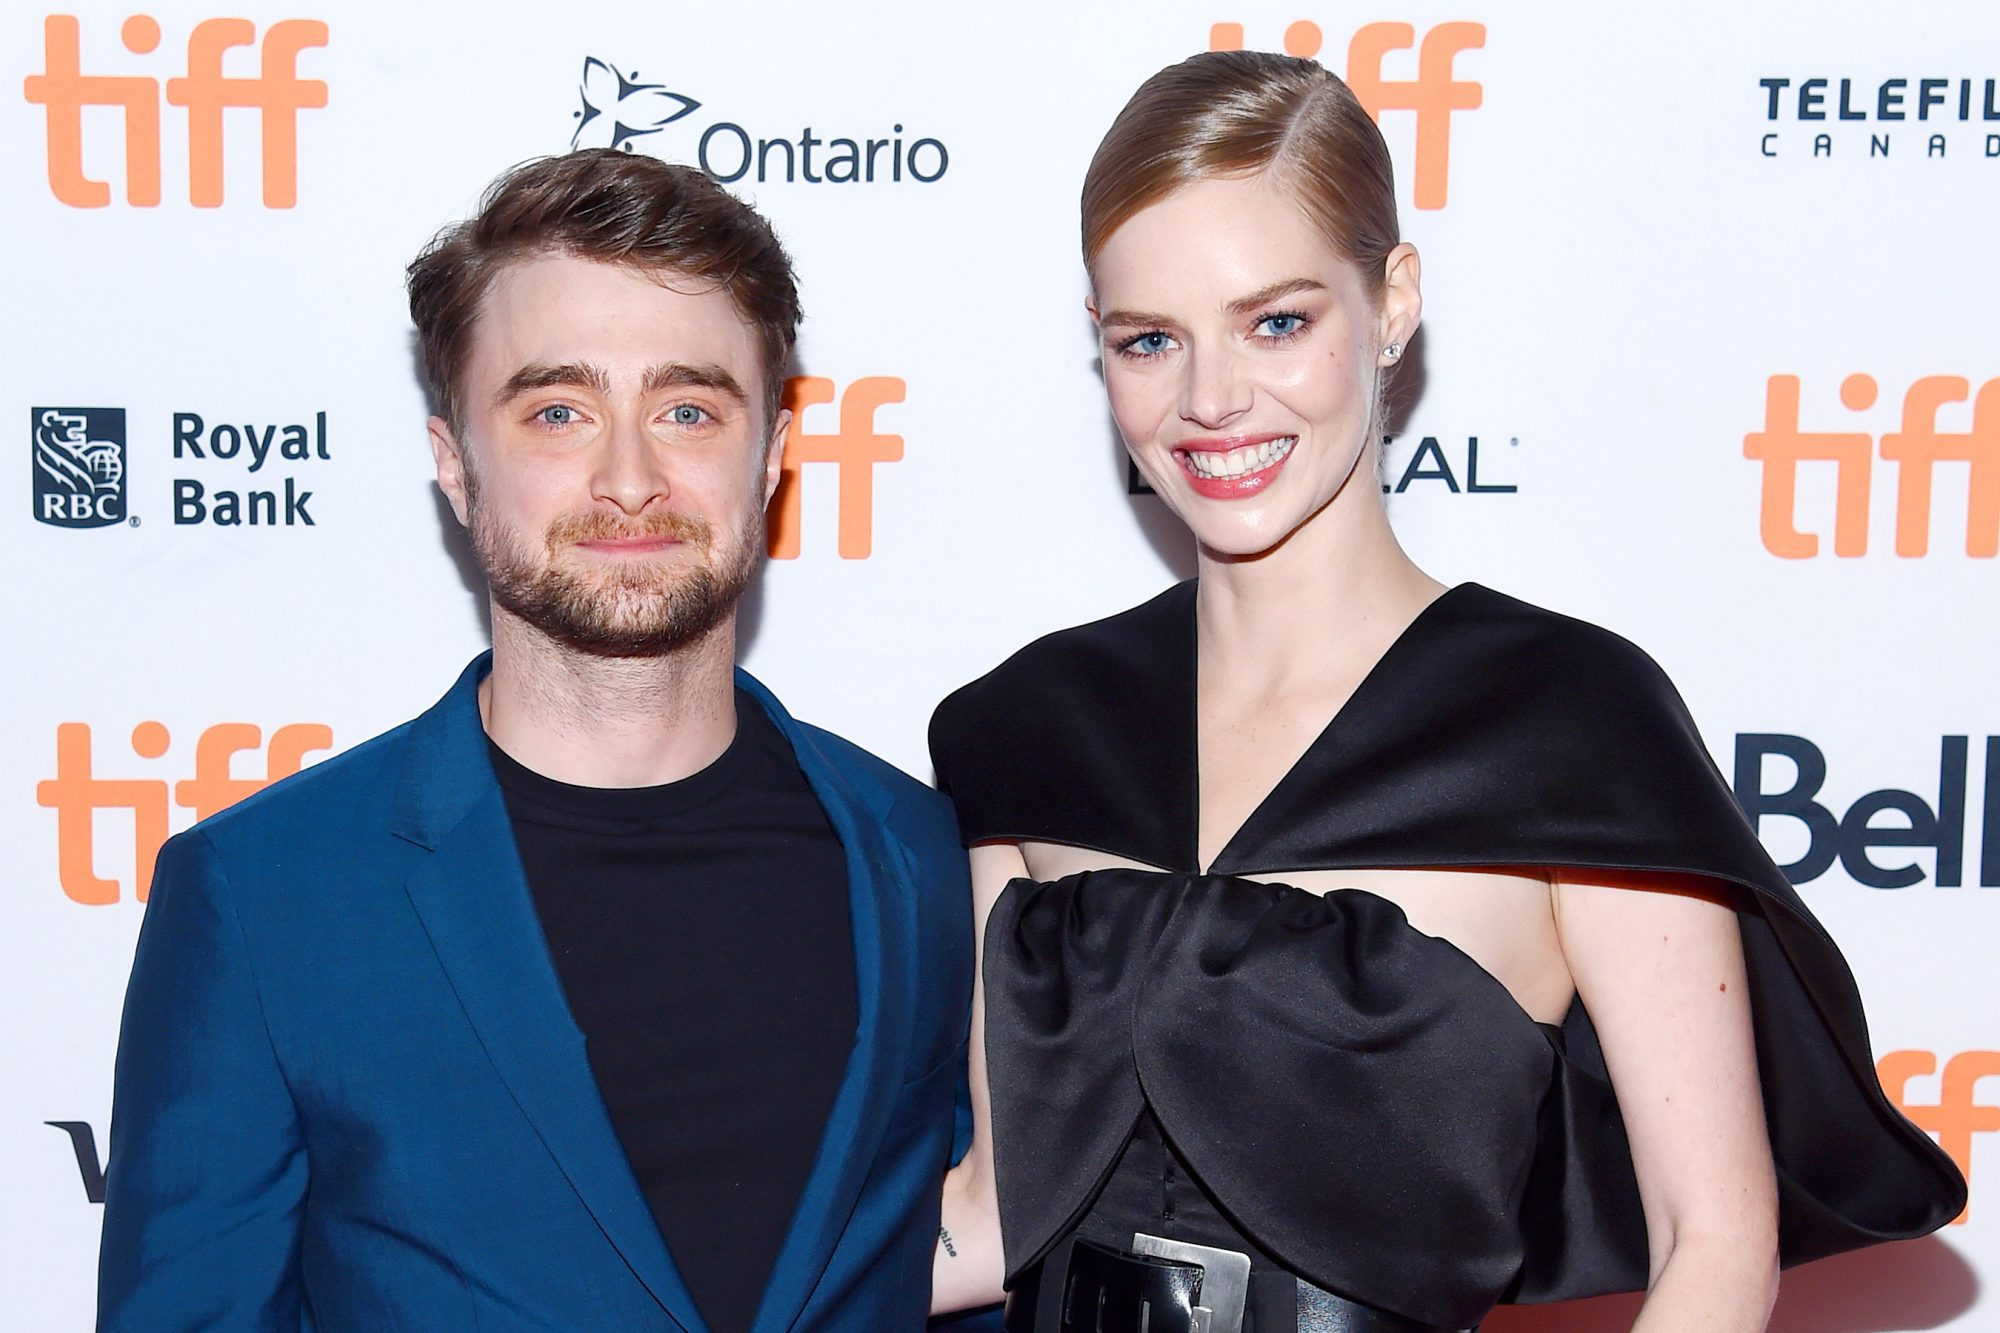 Samara Weaving and Daniel Radcliffe